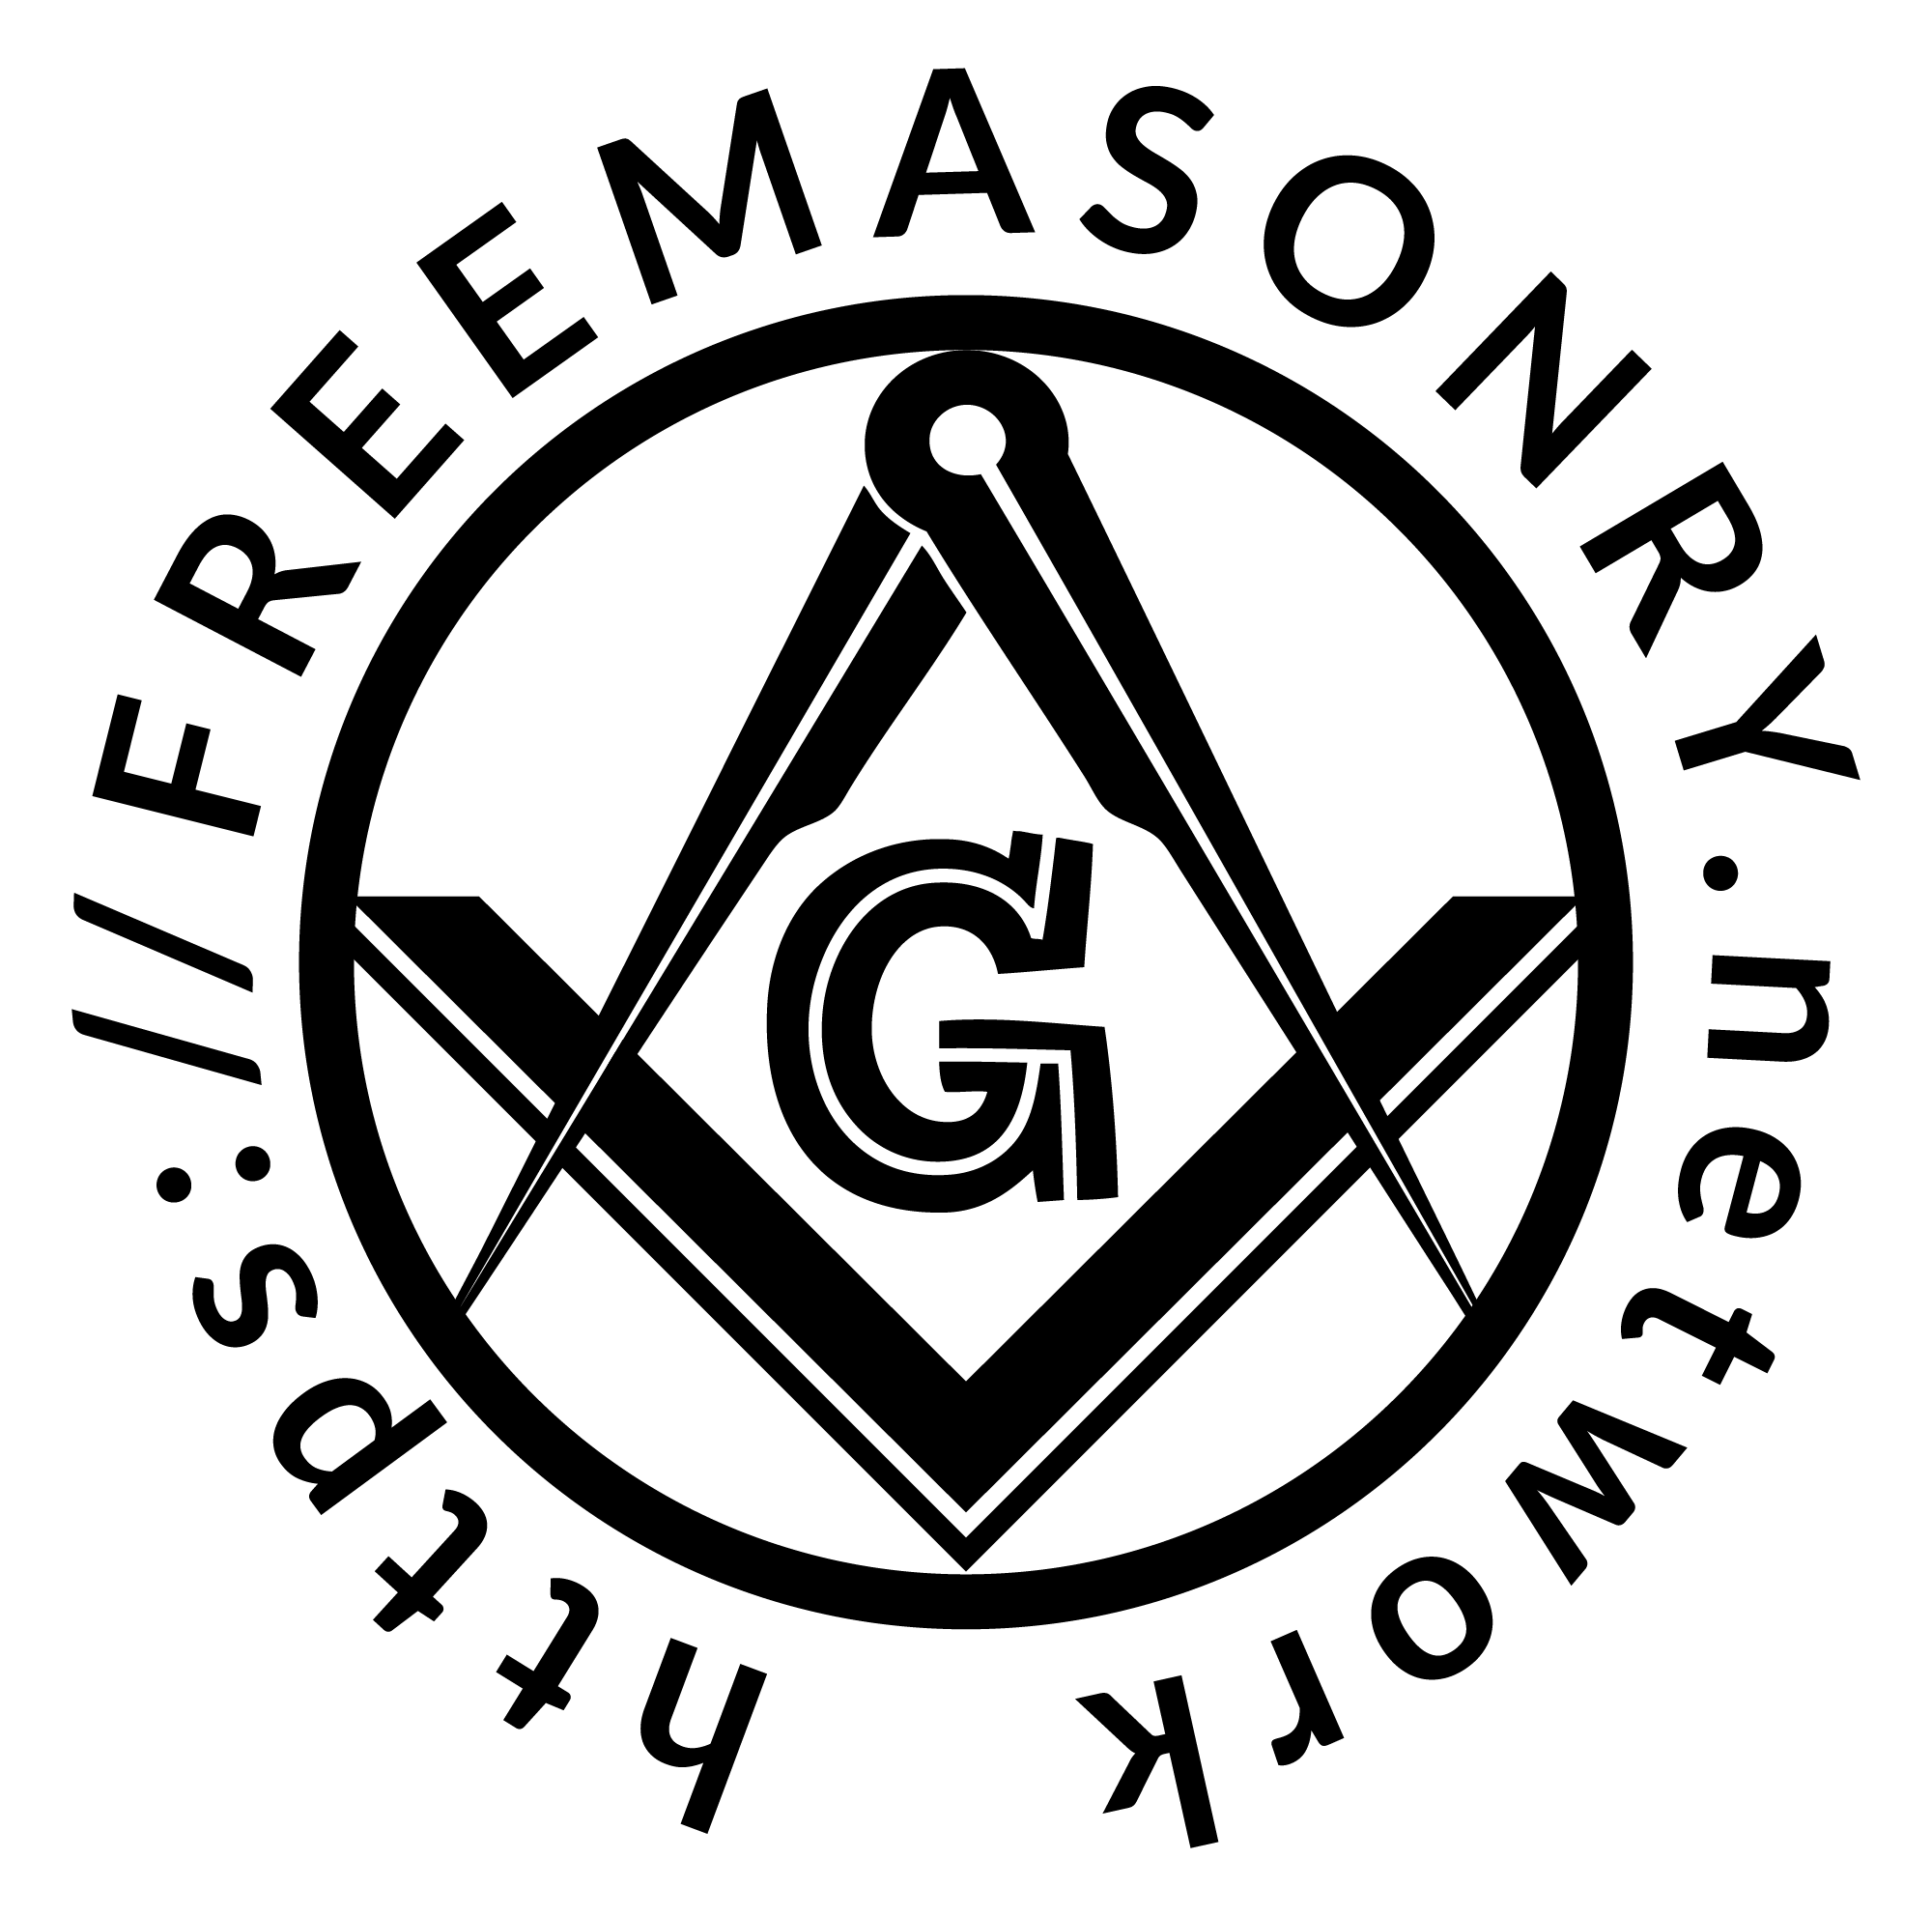 IMPROPER USE OF FREEMASONRY